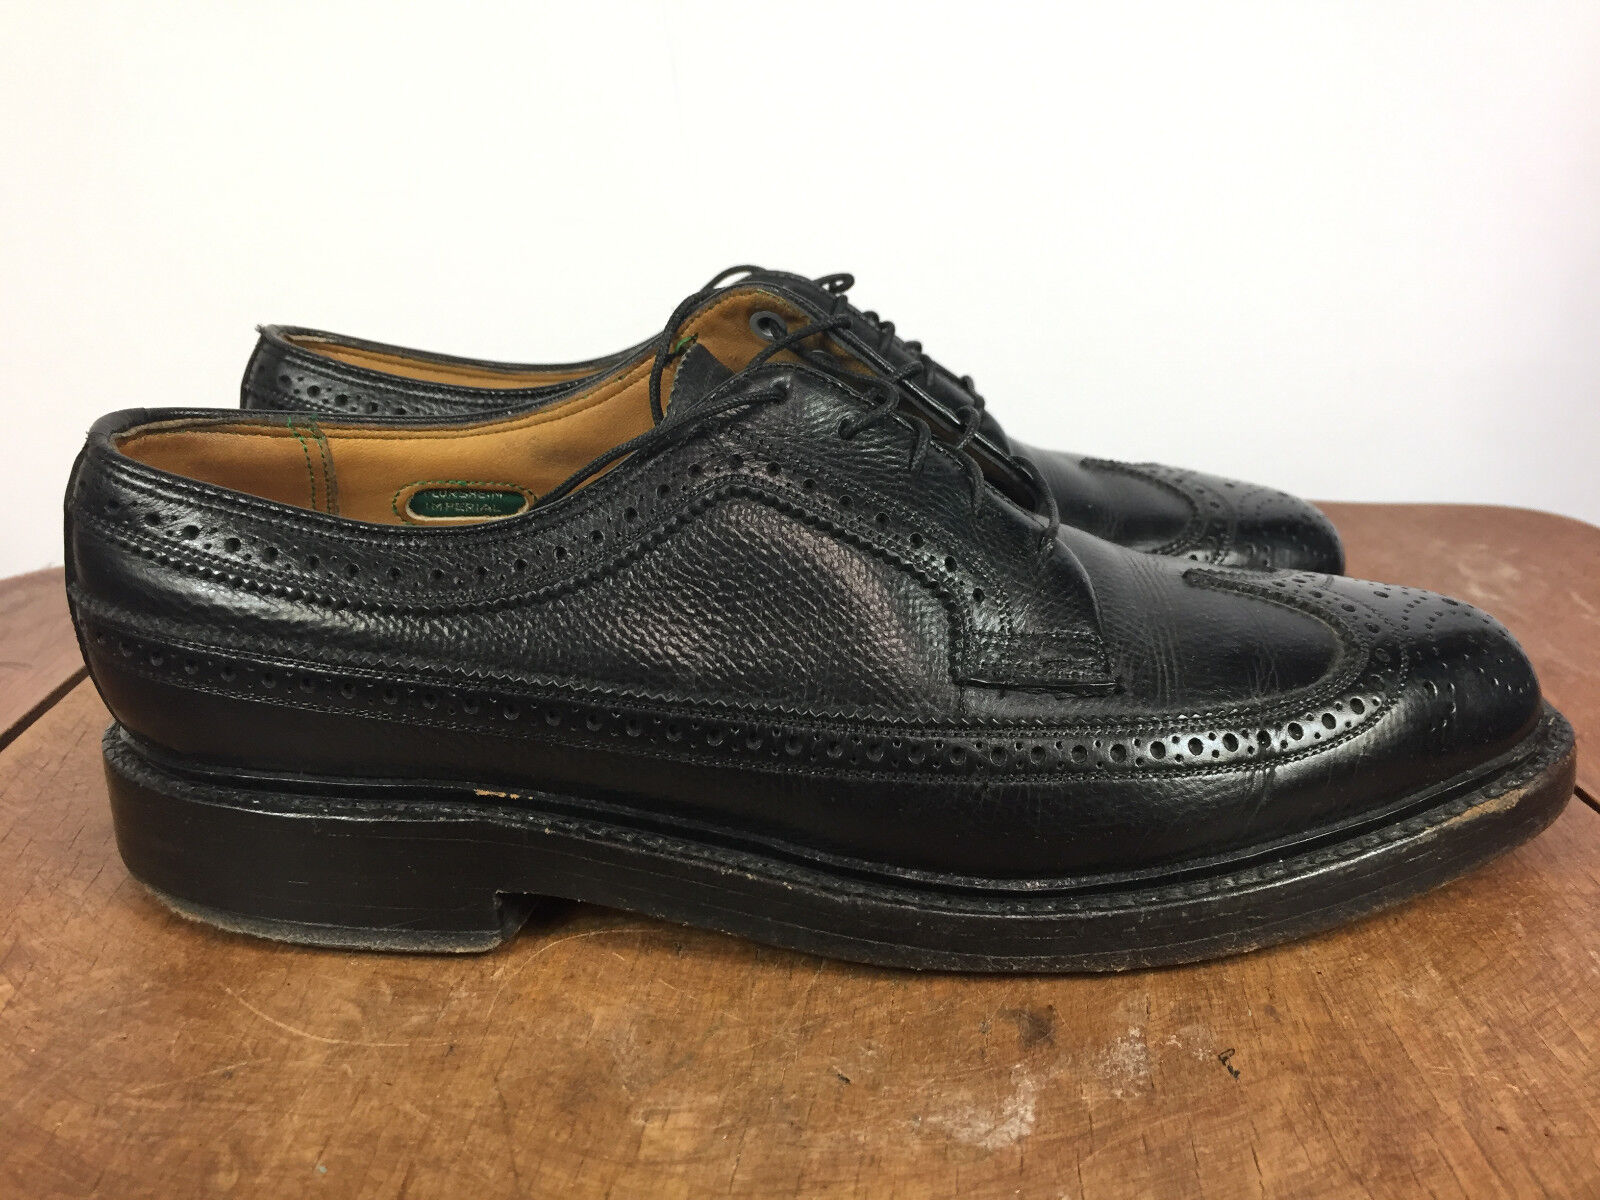 Vtg Florshiem Oxford Wing Tip Gunboat nero 6 Nail V Cleat Dress scarpe Imperial